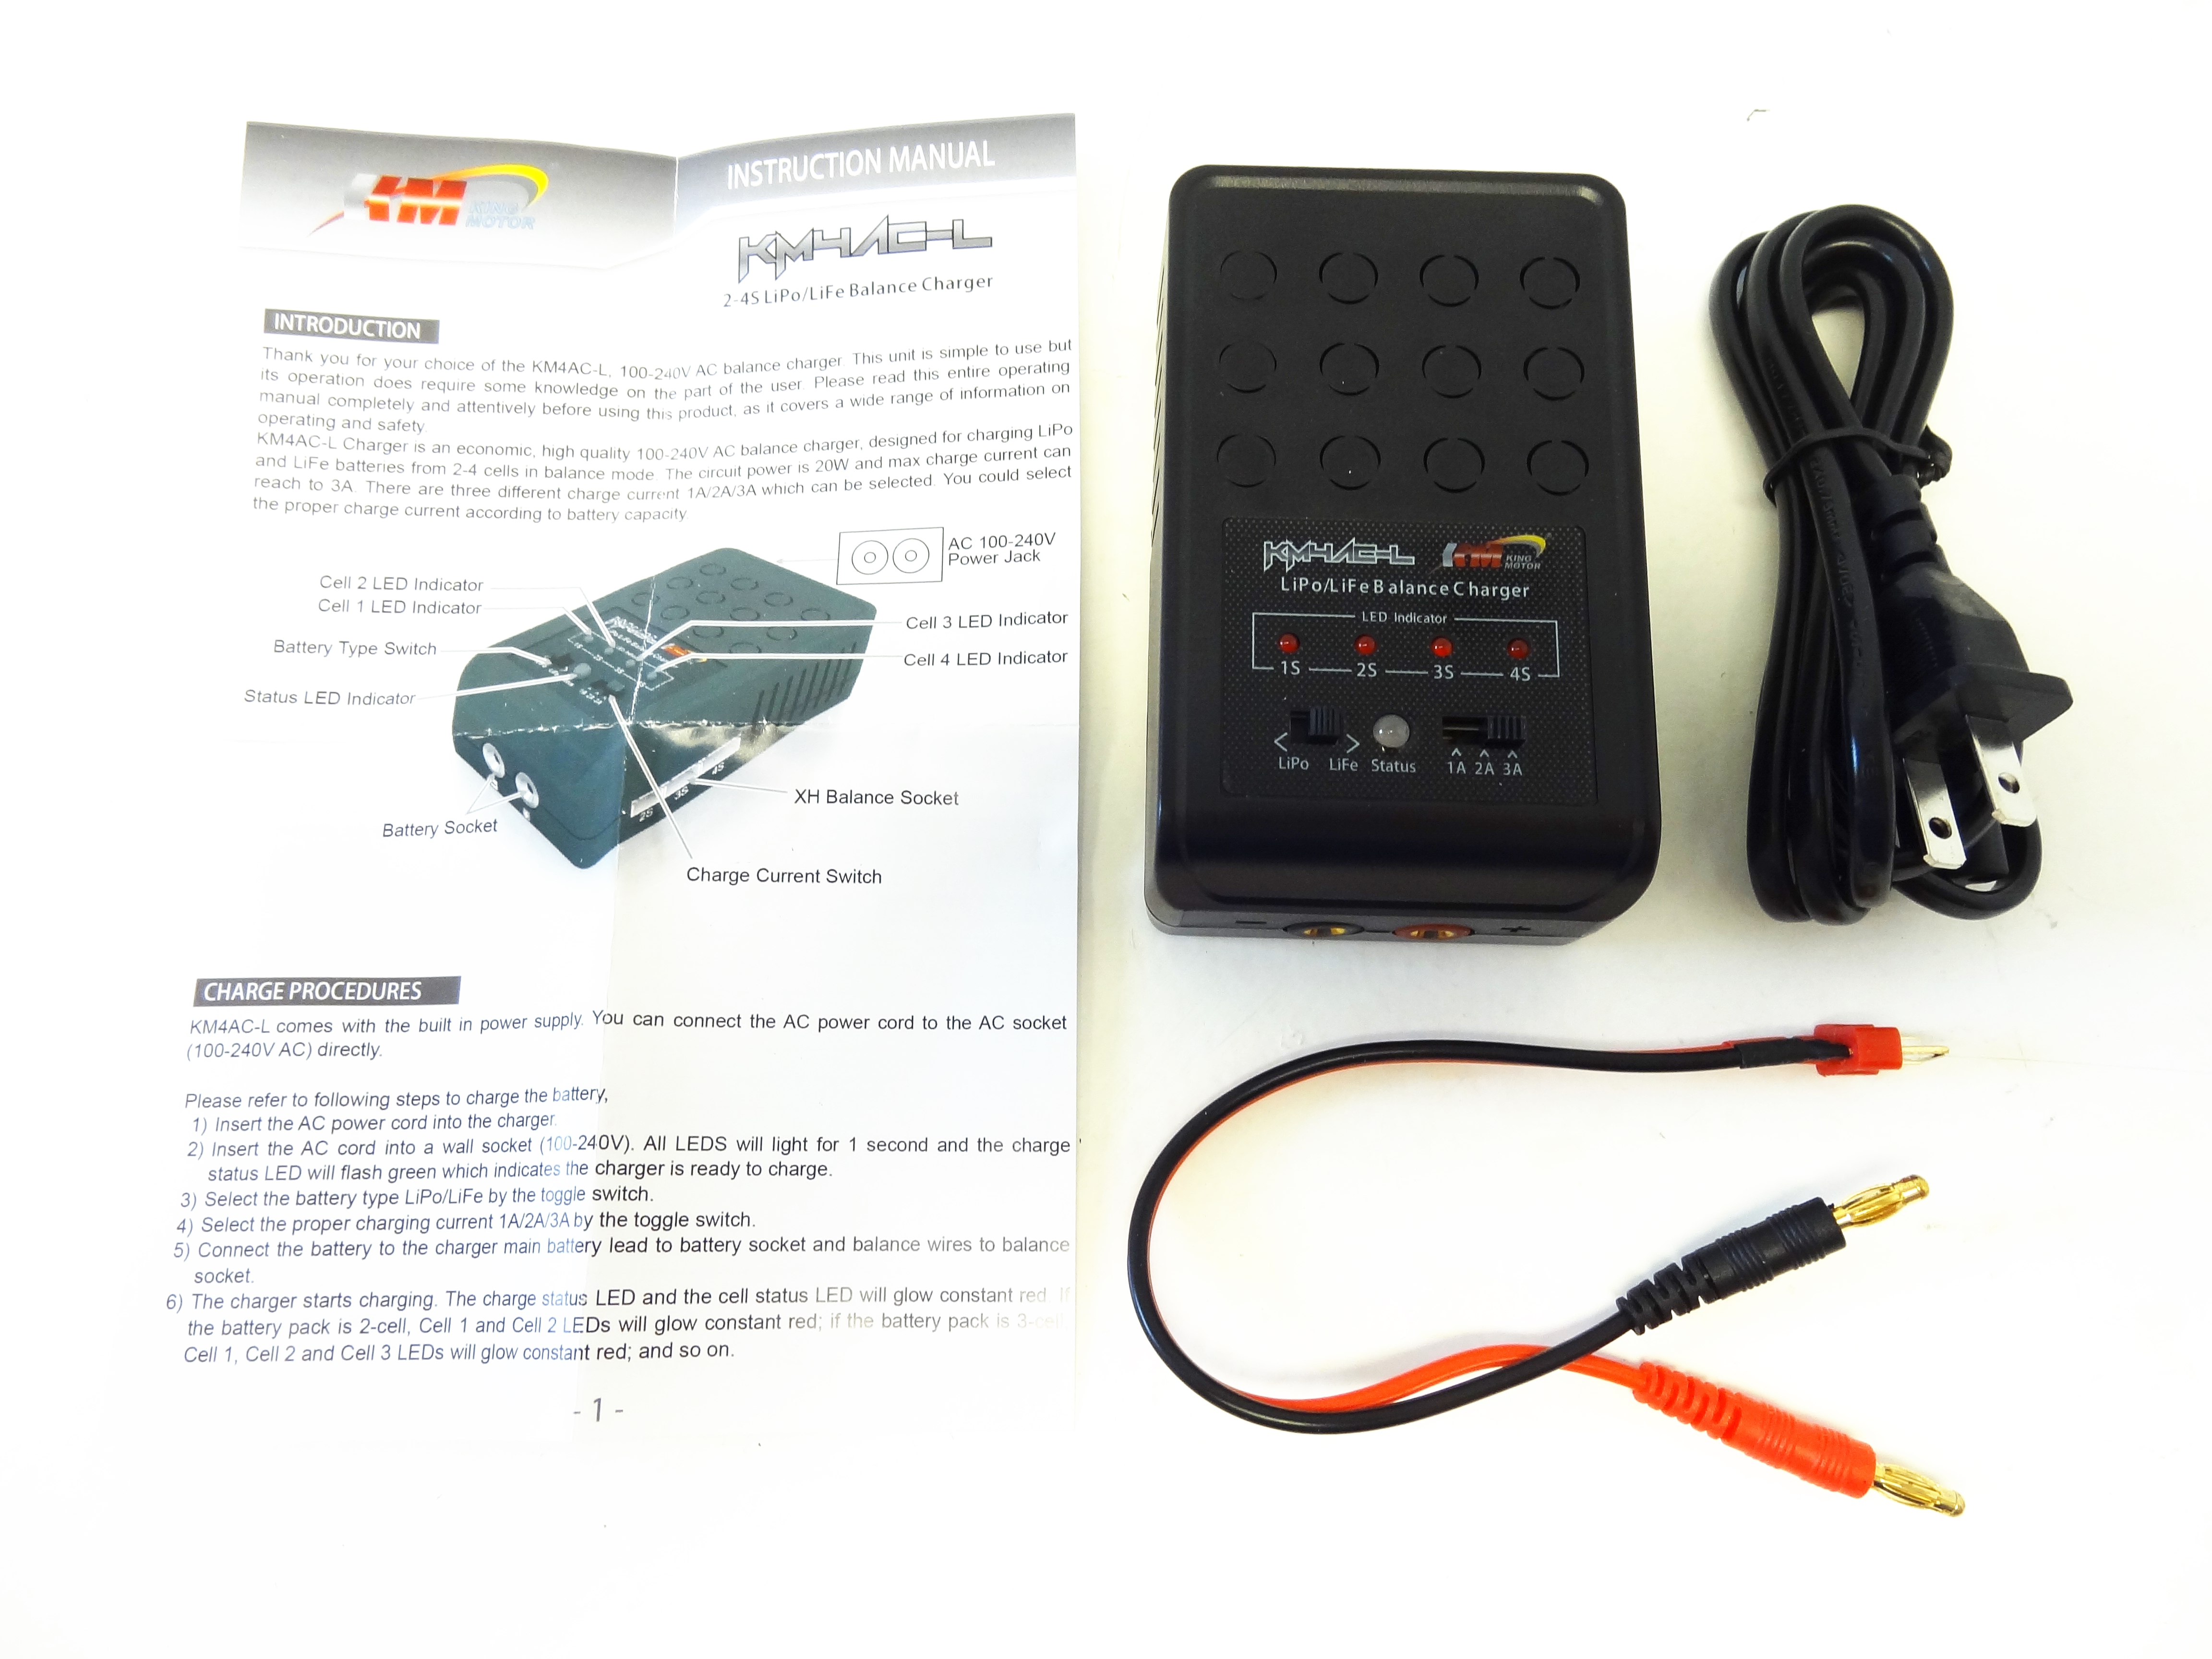 KM4AC-L 1s 2s 3s 4s LiPo LiFe Balancing Charger AC 3 Amp (12v/240v)